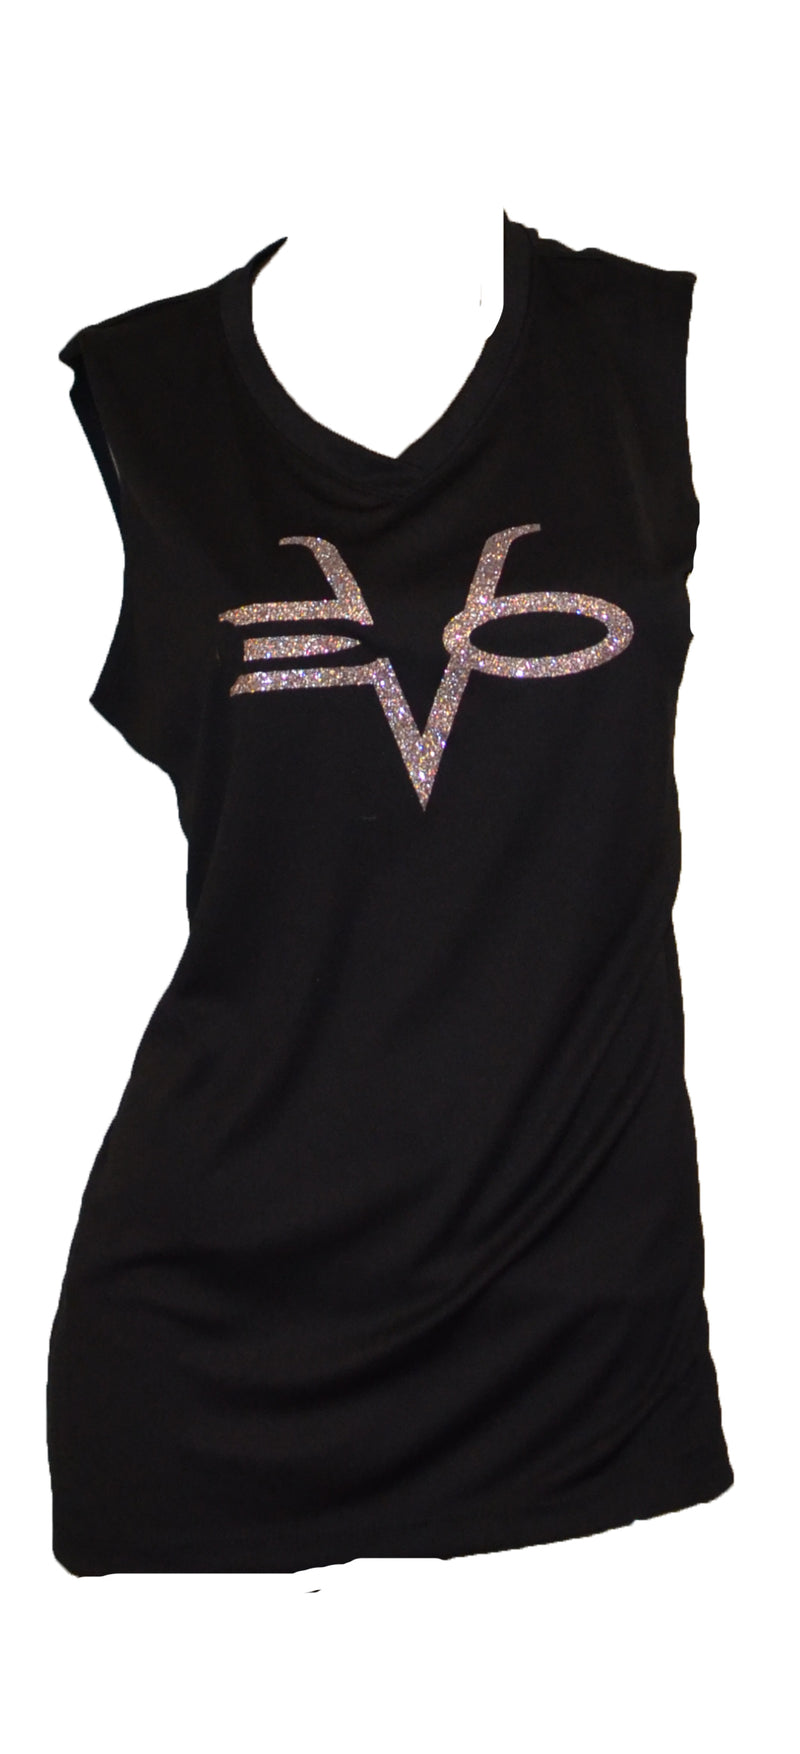 Evo9x EVO STAMP Sleeveless Jersey Black/Silver CLEARANCE